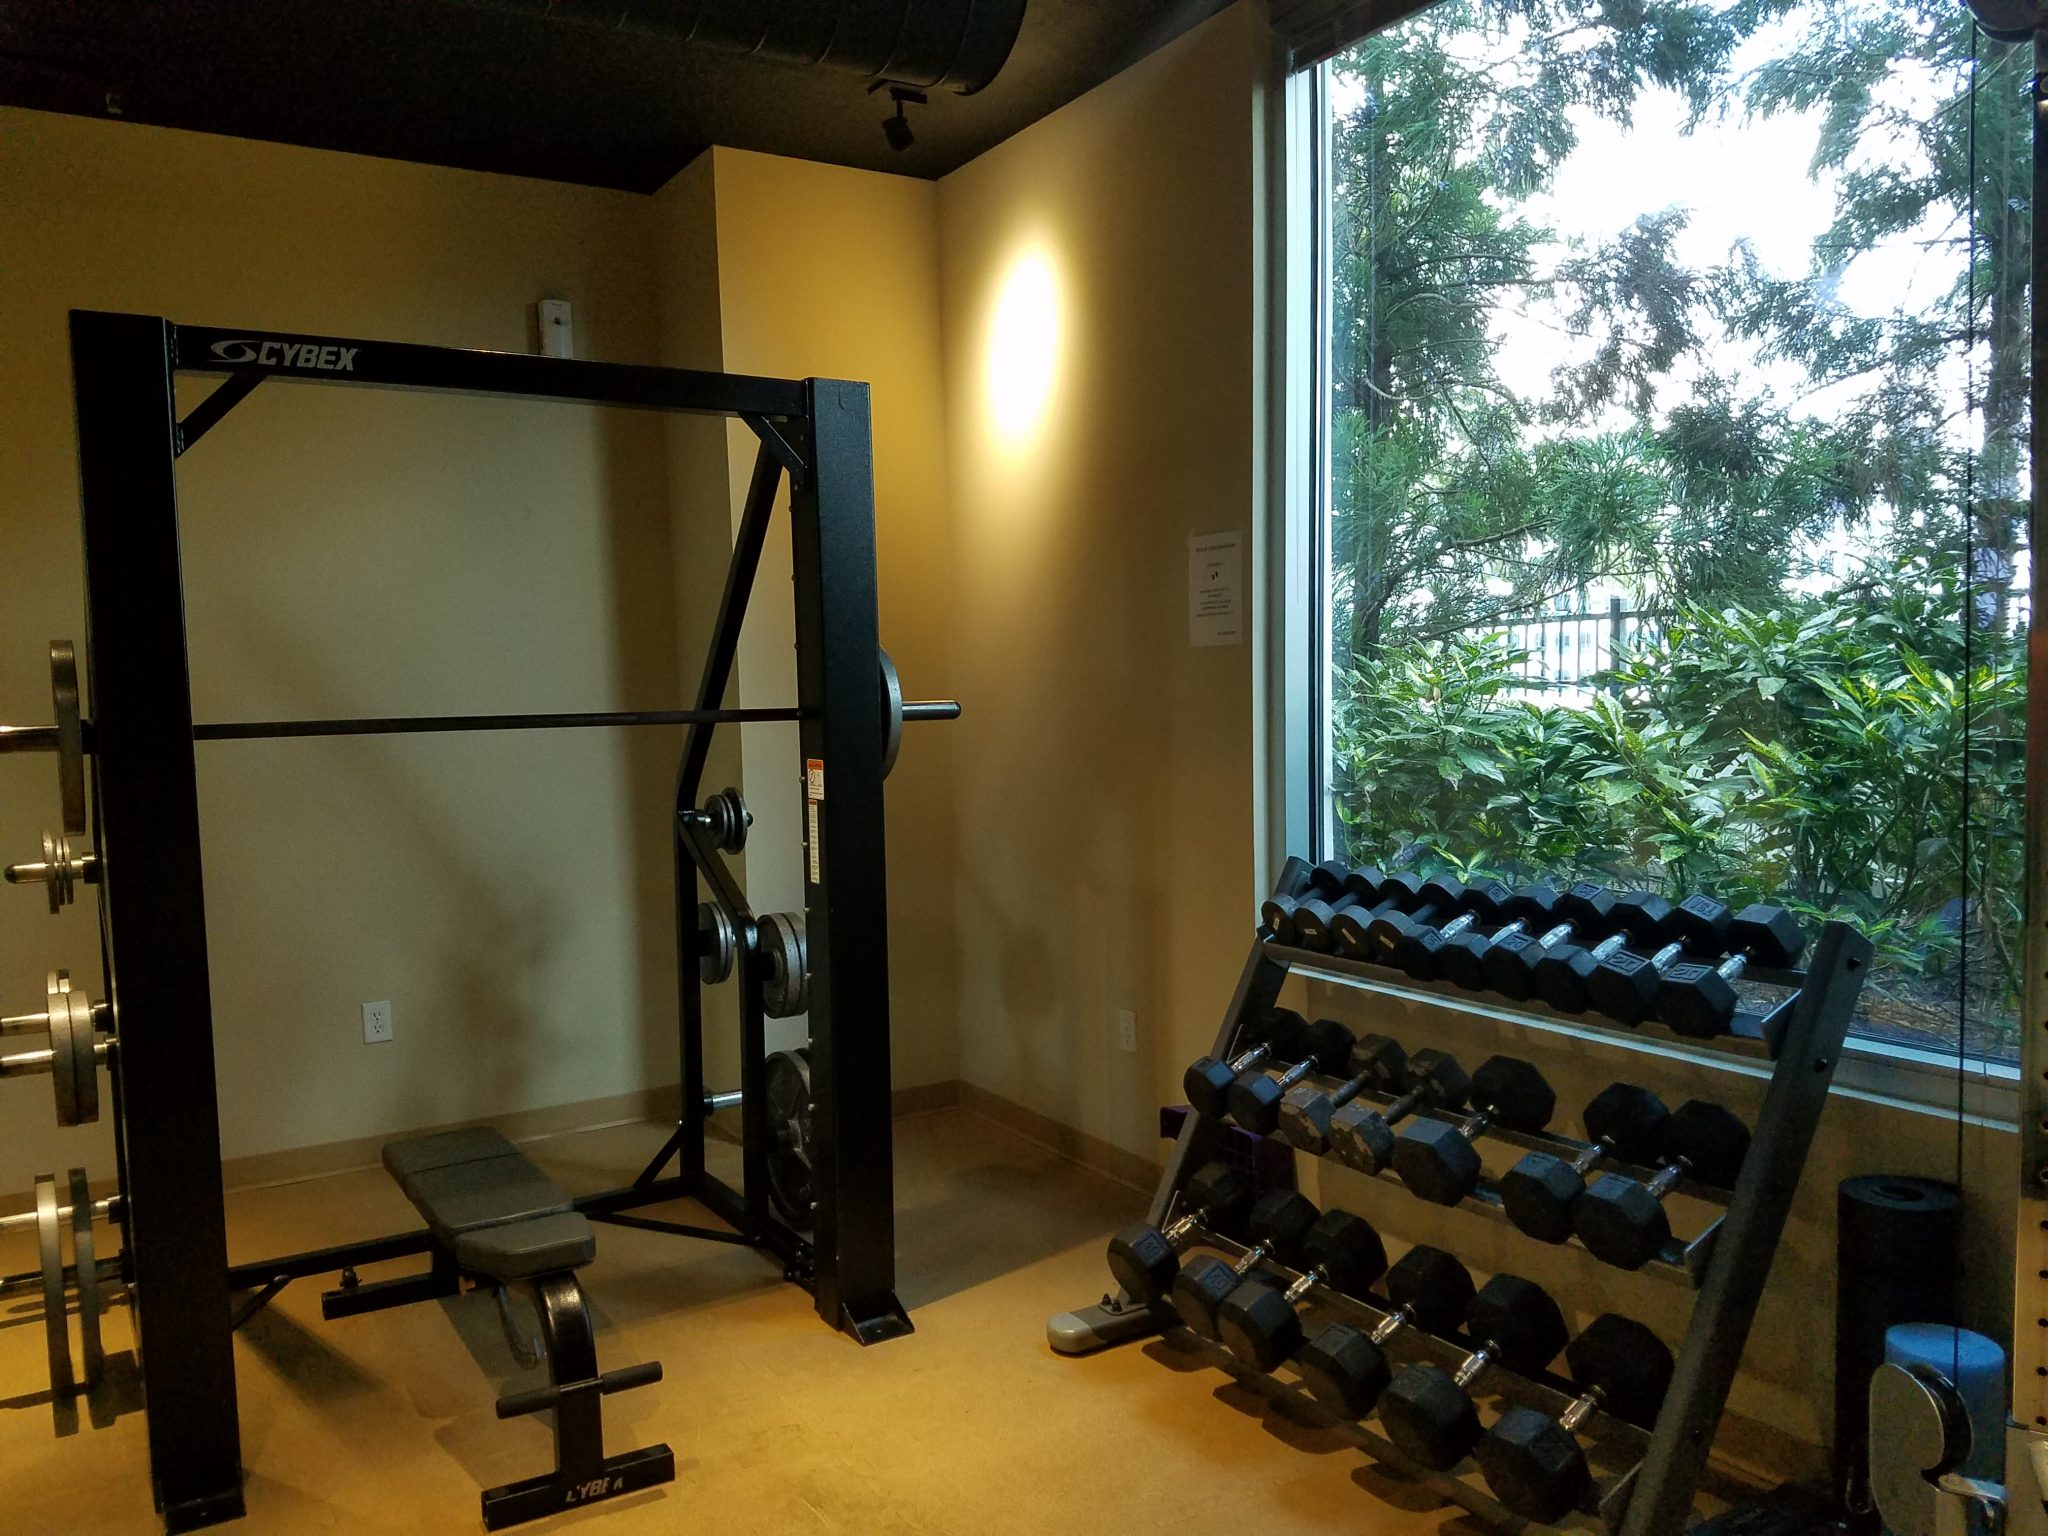 The Realm in Buckhead Fitness Weight room and dumbbells